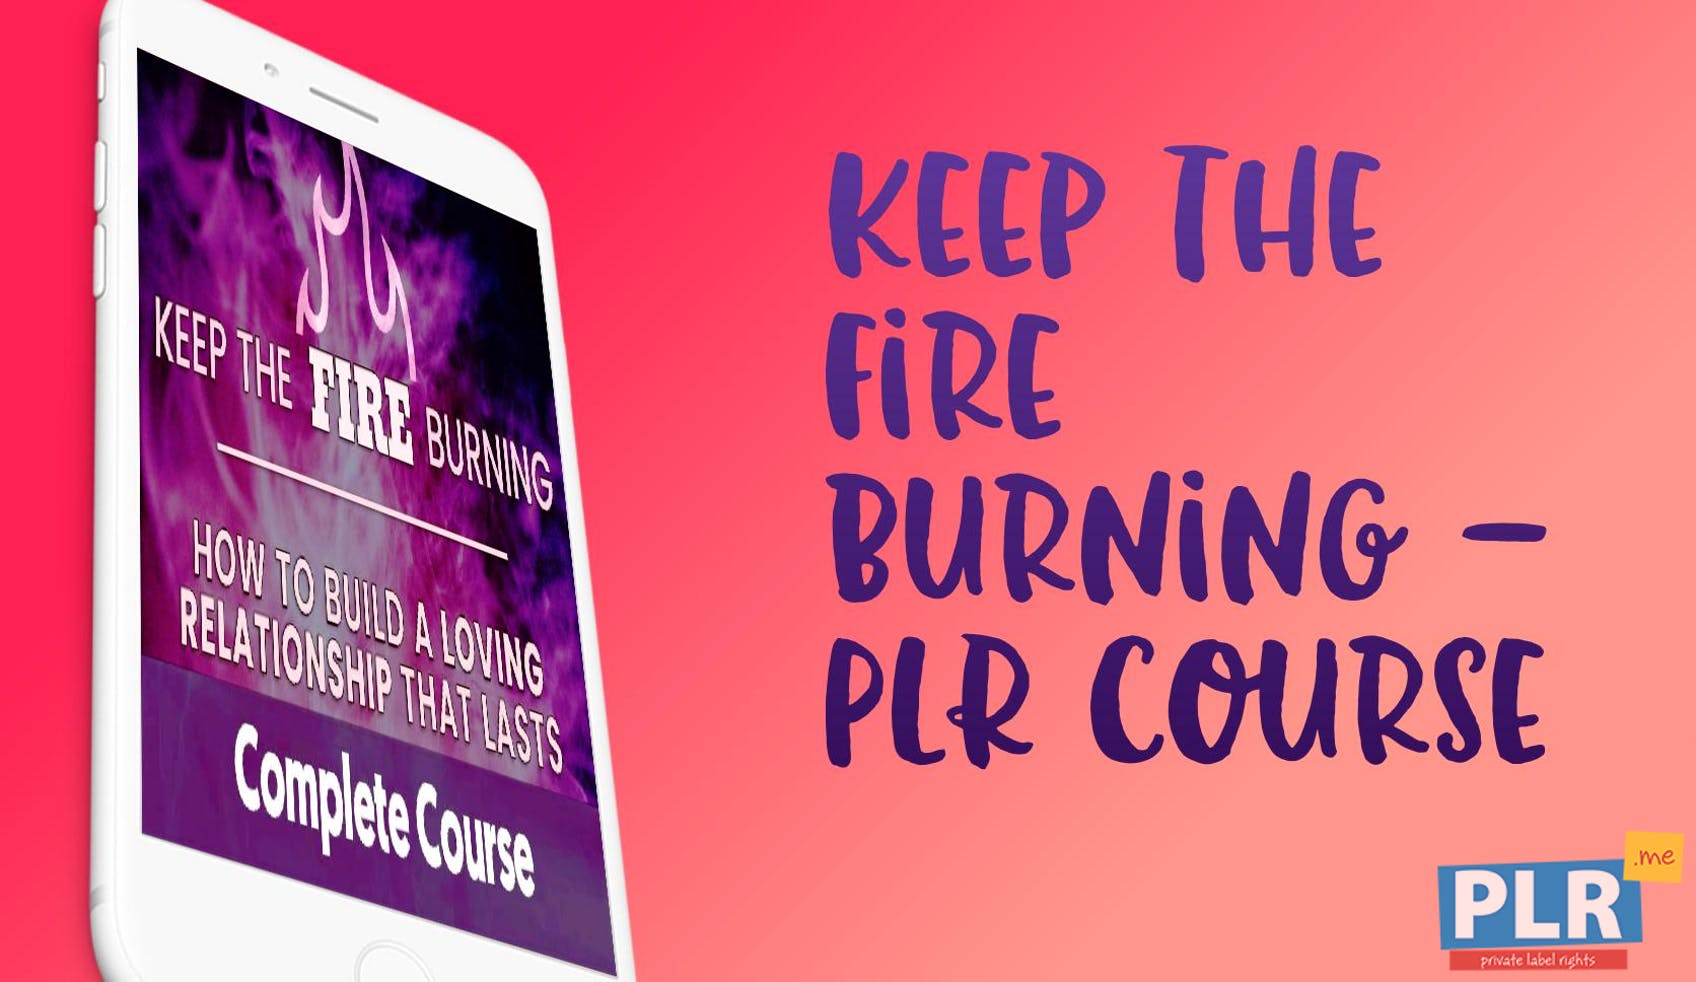 Keep The Fire Burning: How To Build A Loving Relationship That Lasts - PLR Course